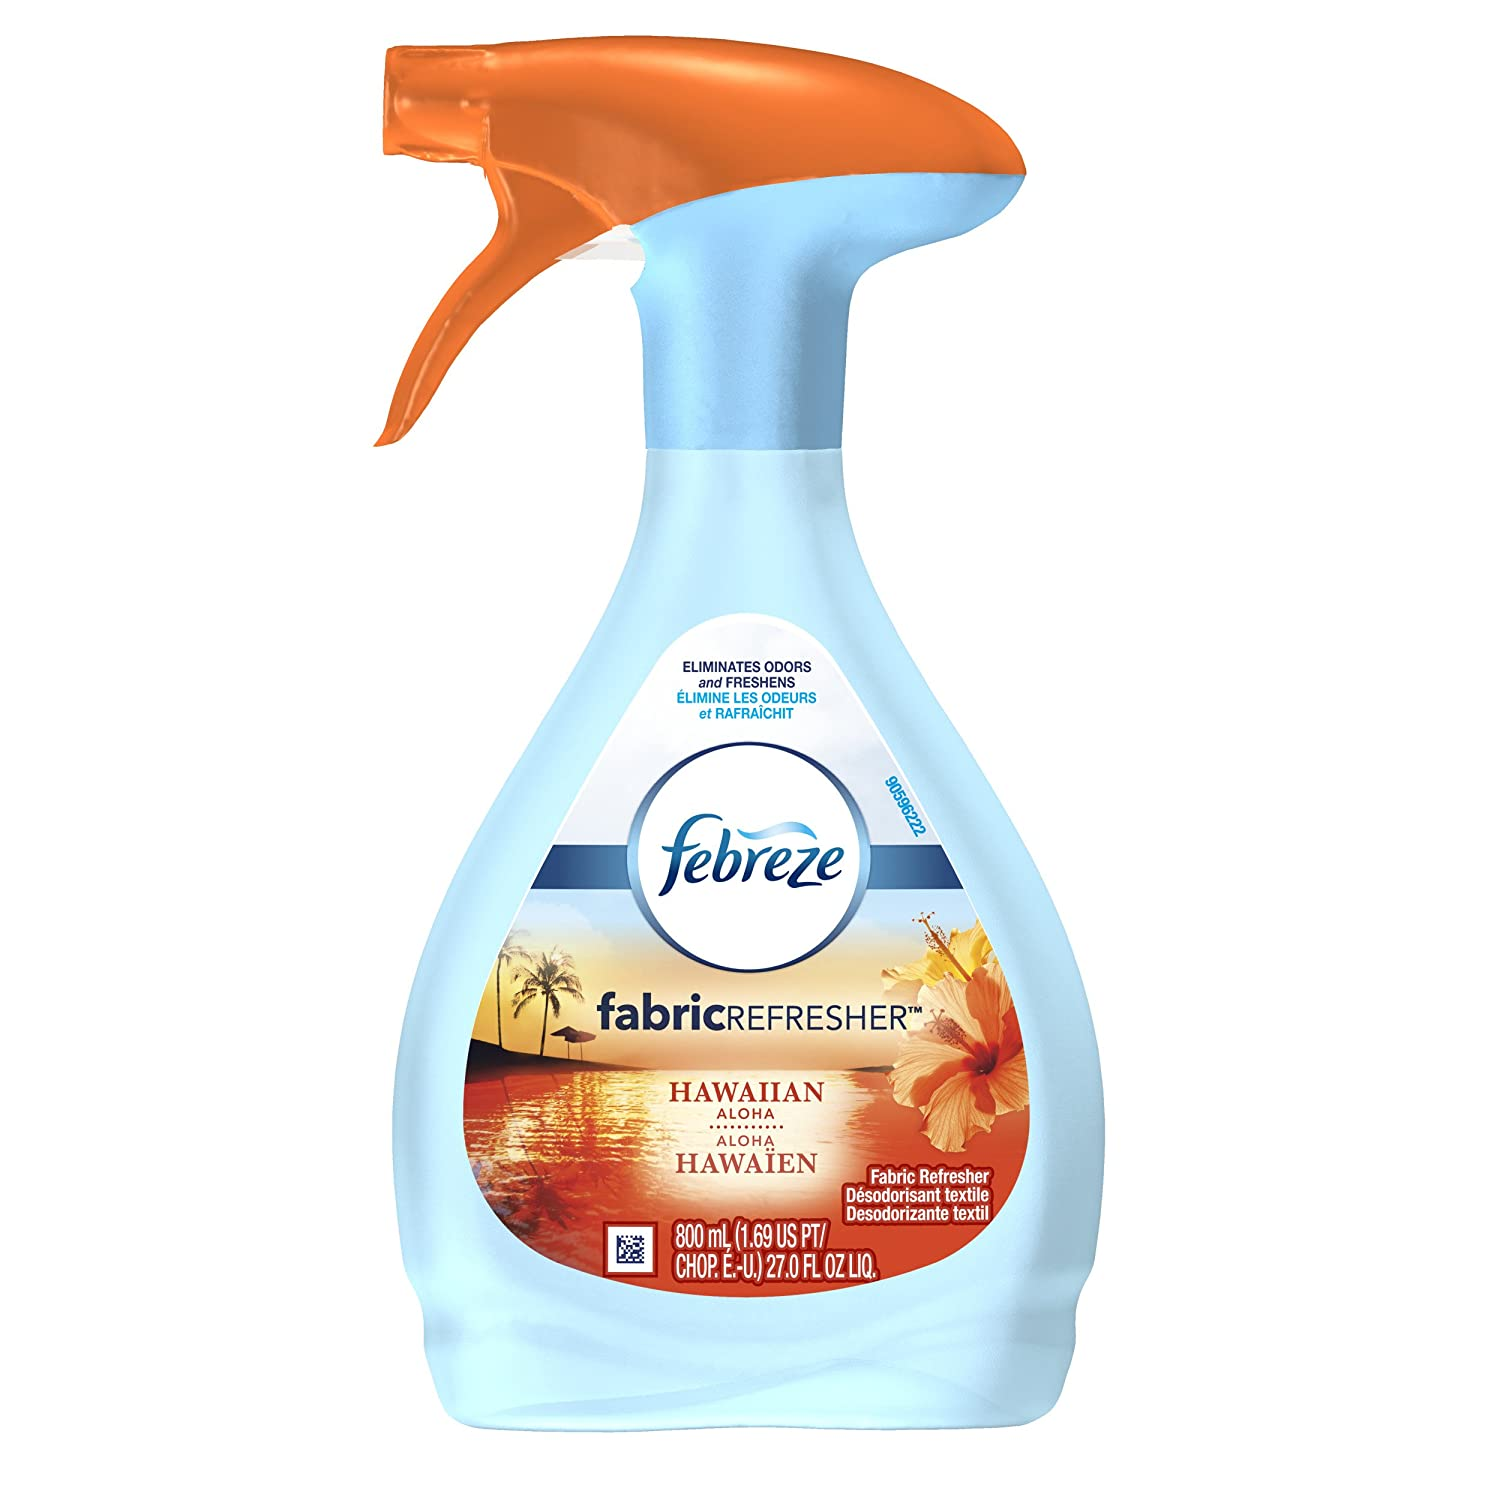 Febreze Tide Original Fabric Refresher with Scent Air Freshener (1 Count 500ml)